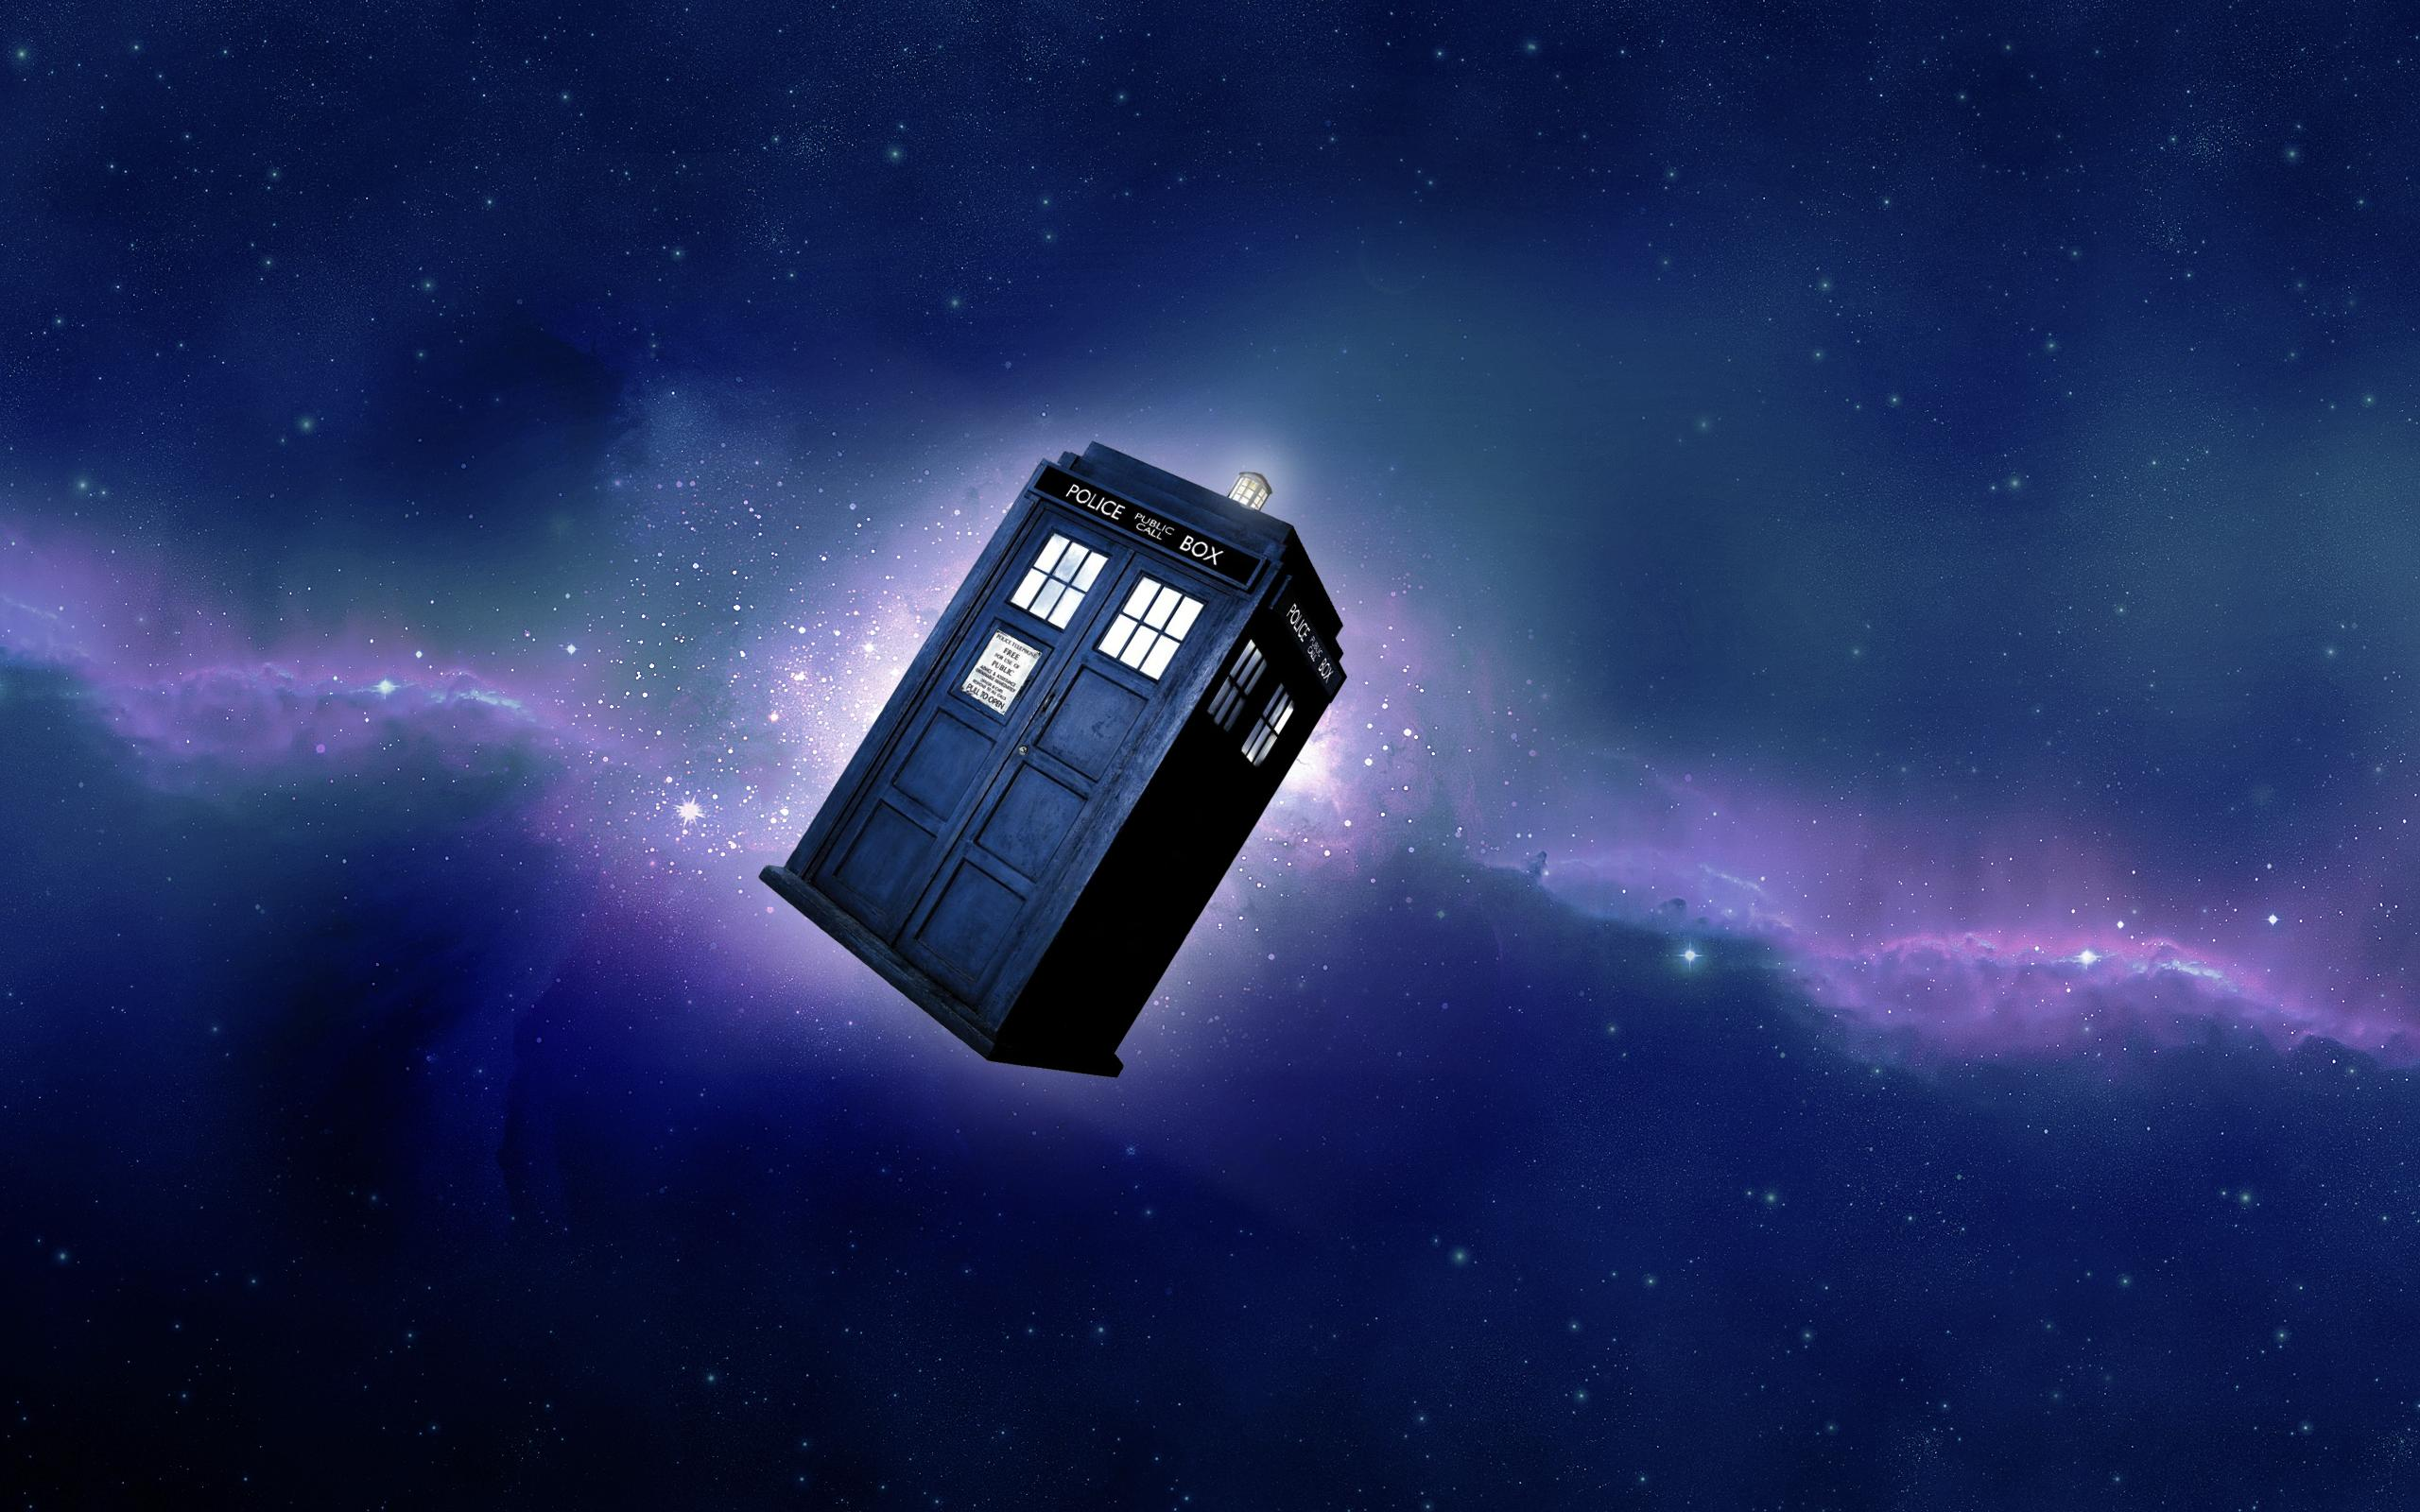 Doctor Who Tablet Wallpaper 2560x1600